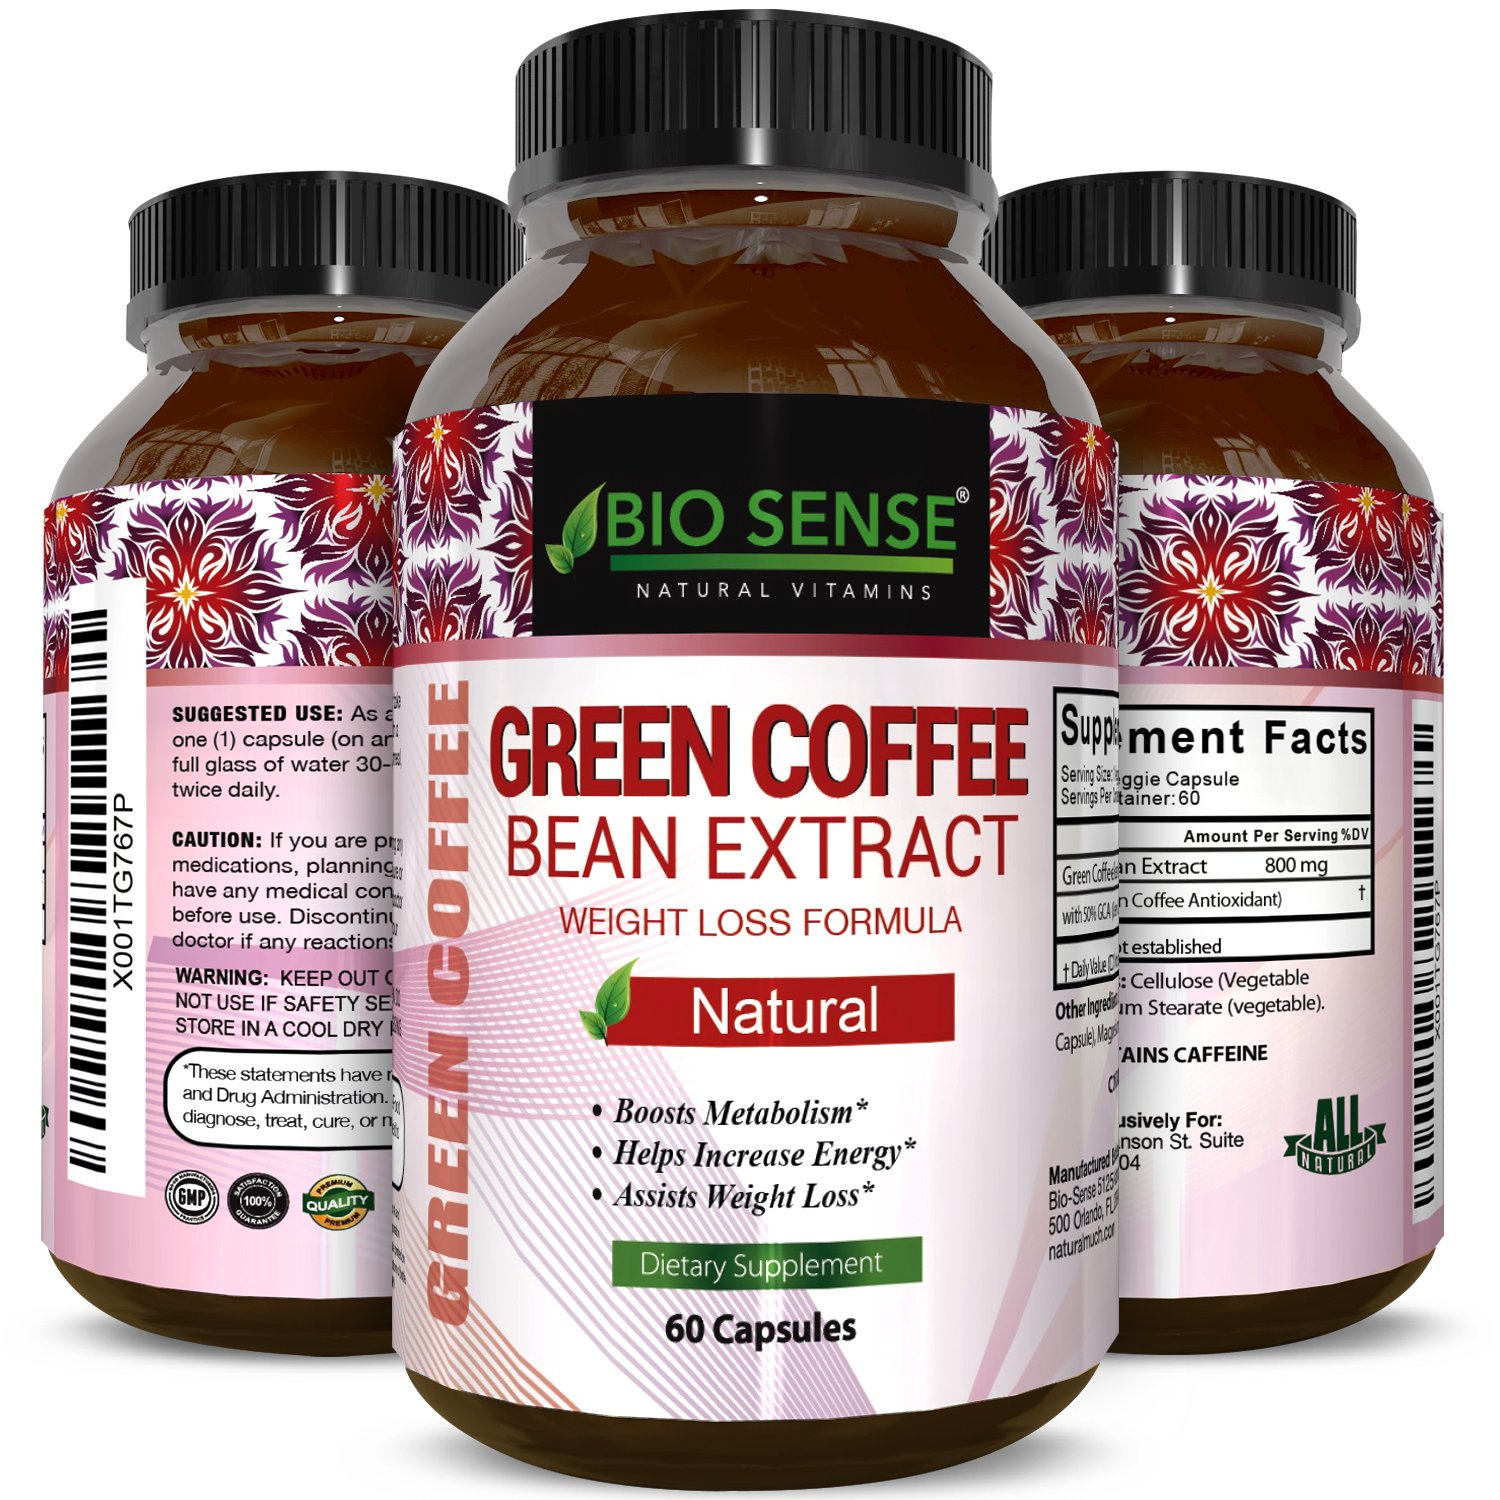 Pure Green Coffee Bean Extract for Weight Loss Pills - Dietary Supplement to Burn Fat Curb Appetite and Boost Metabolism for Men and Women - Contains Antioxidants to Detox and Cleanse - 800mg Capsules by Bio Sense